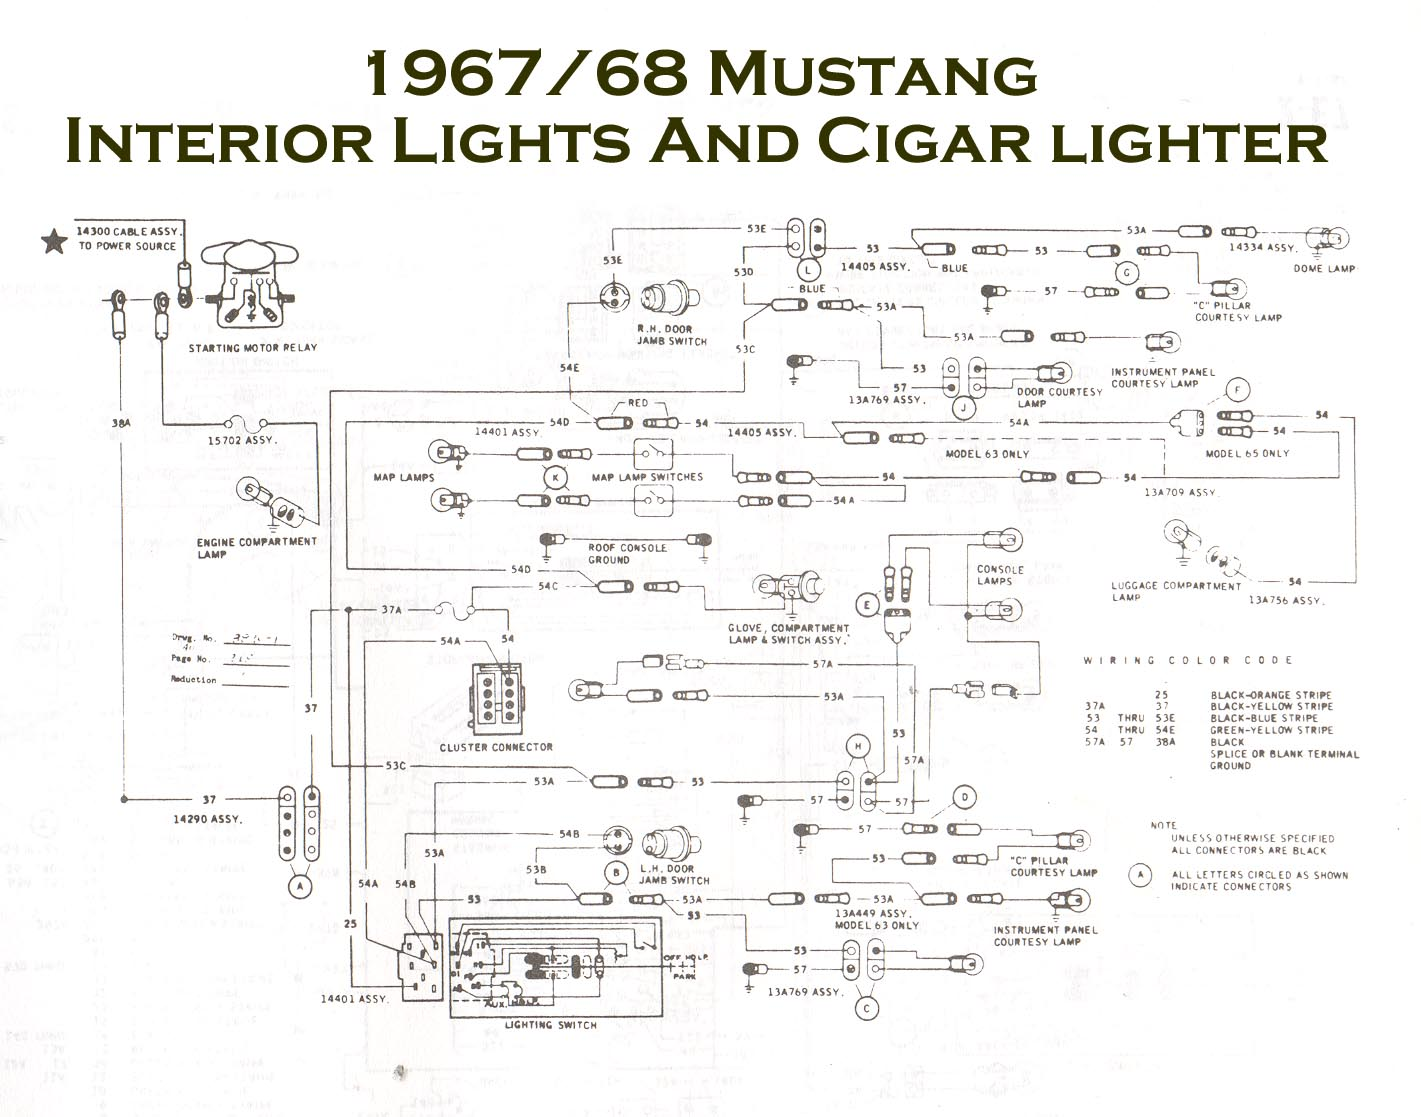 hb_5530] wiring diagram also mustang headlight switch wiring diagram on 1967  sand lukep oxyt rmine shopa mohammedshrine librar wiring 101